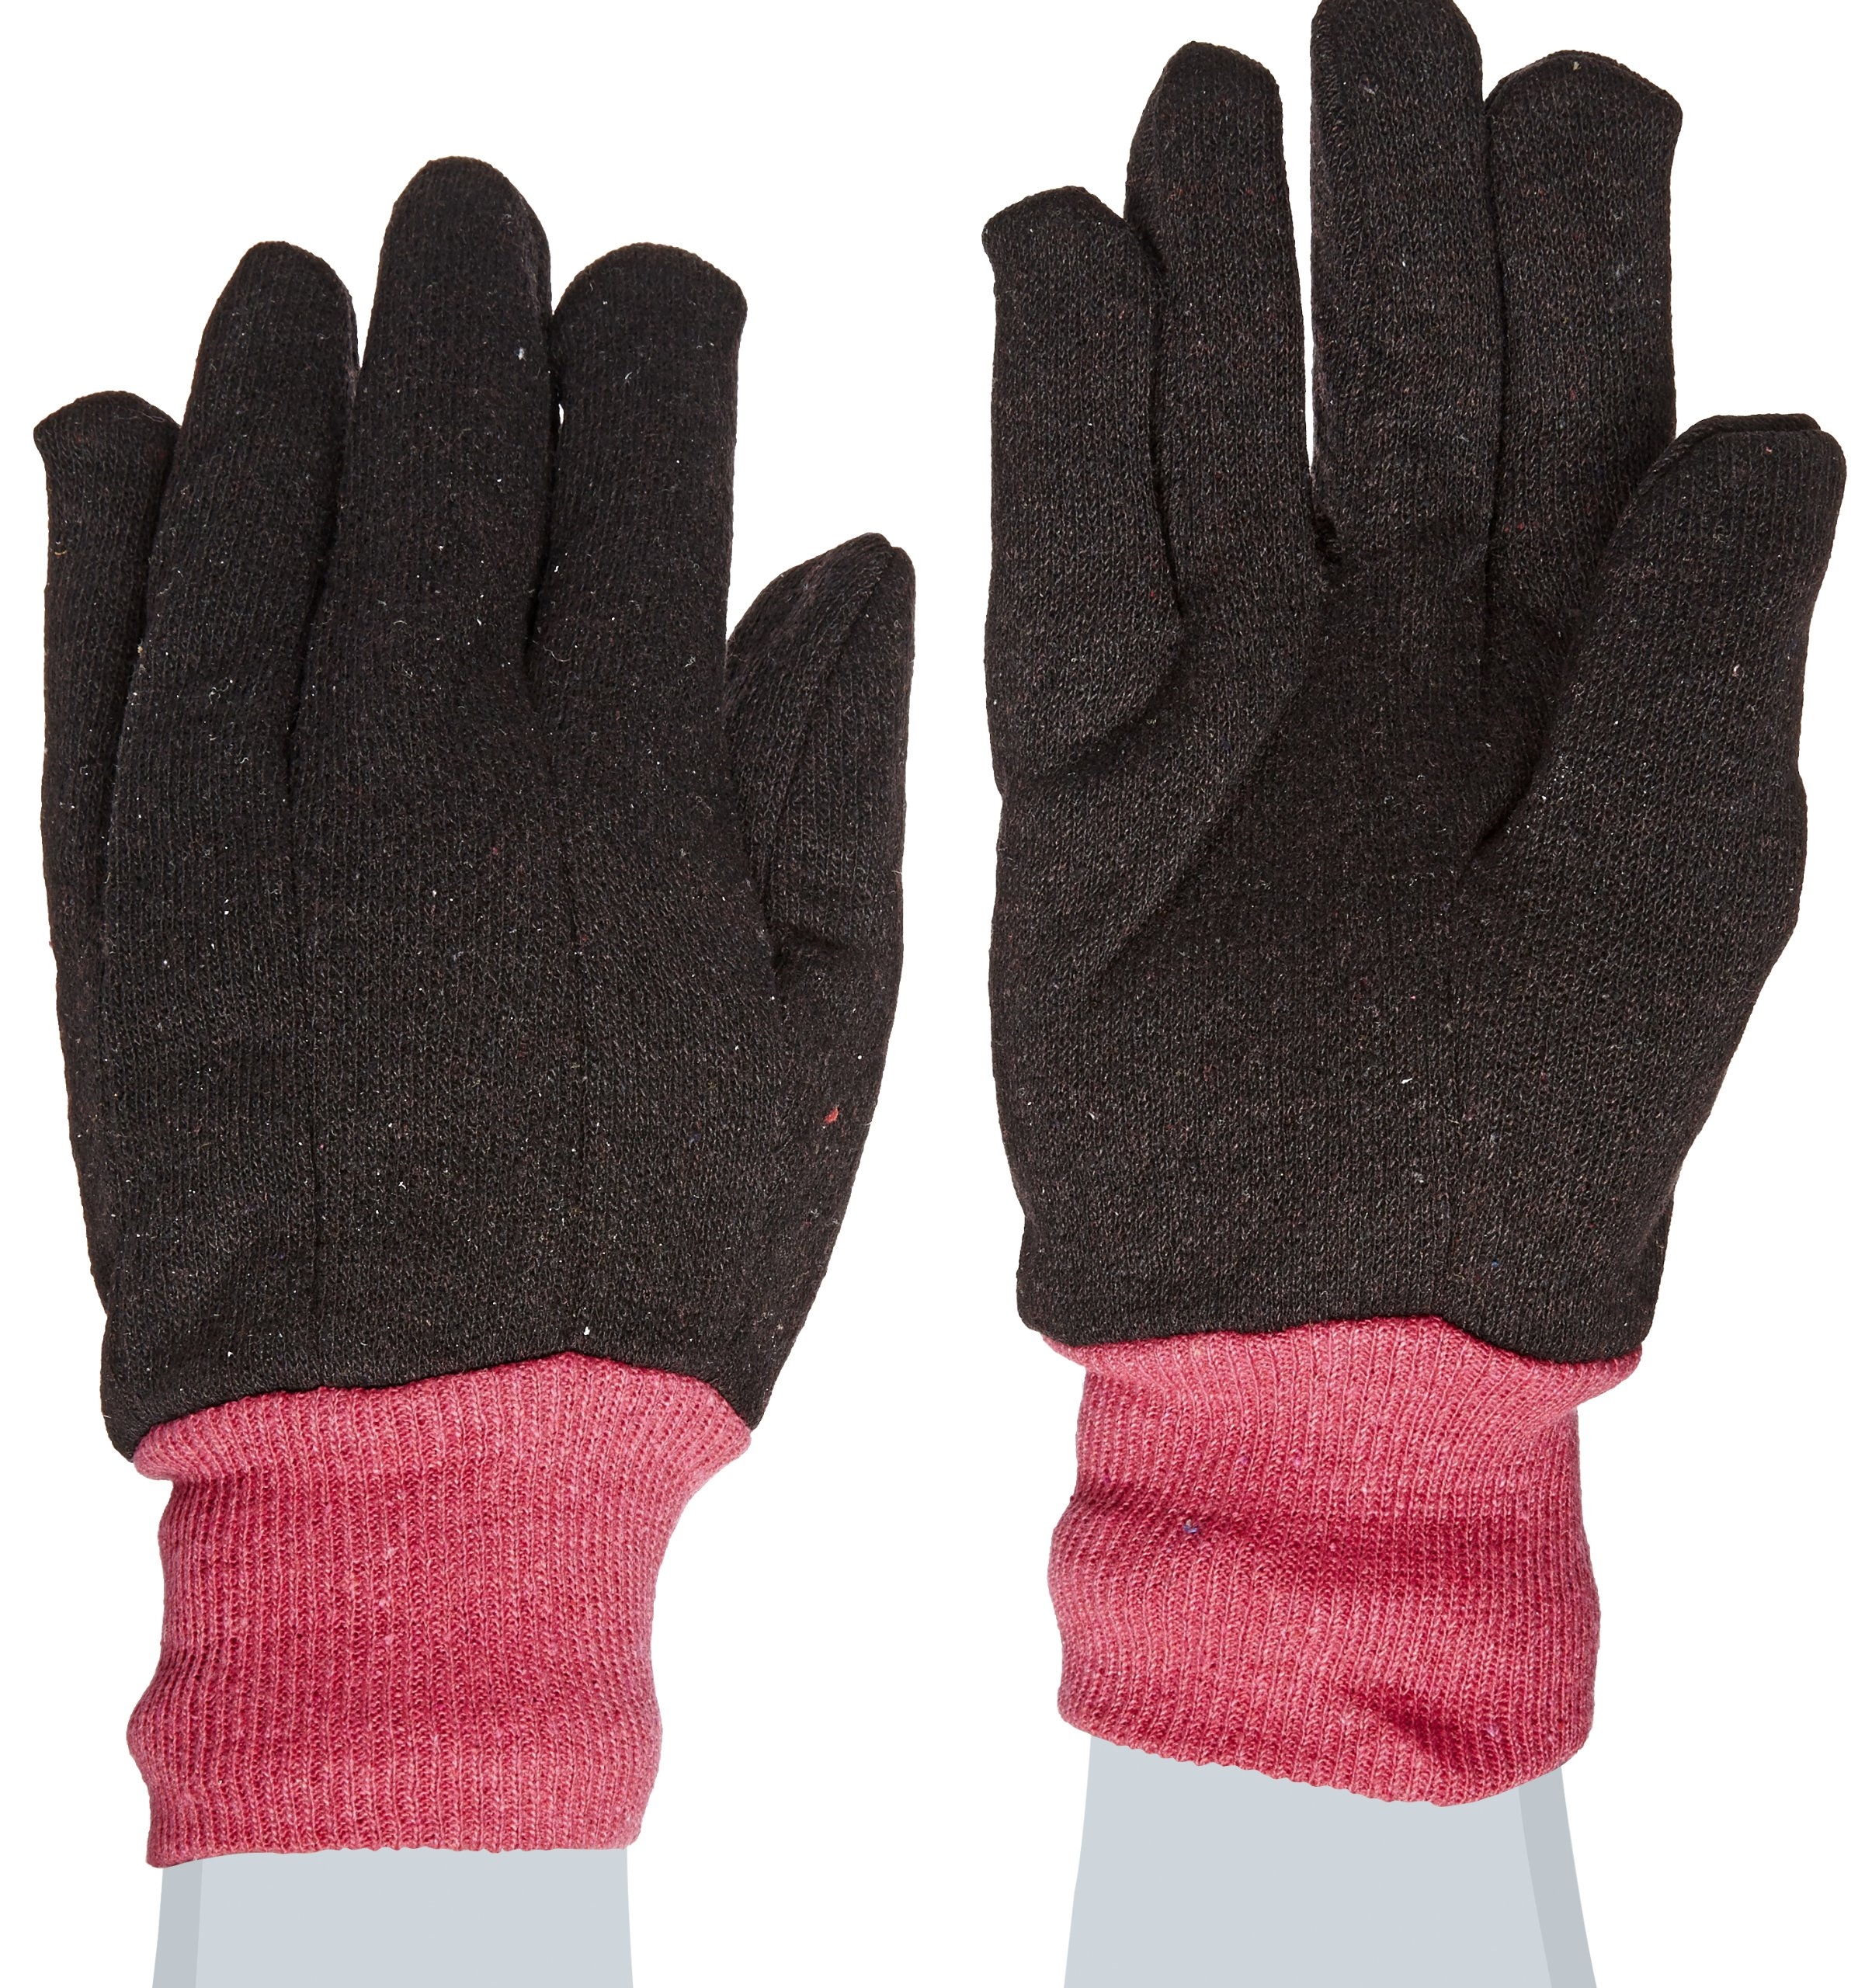 West Chester 69090 Polyester Cotton All Purpose Jersey Glove with Red Fleece Lining, Work, Knit Wrist Cuff, 9-5 8'' Length, Women's, Brown (Pack of 1 Pair)